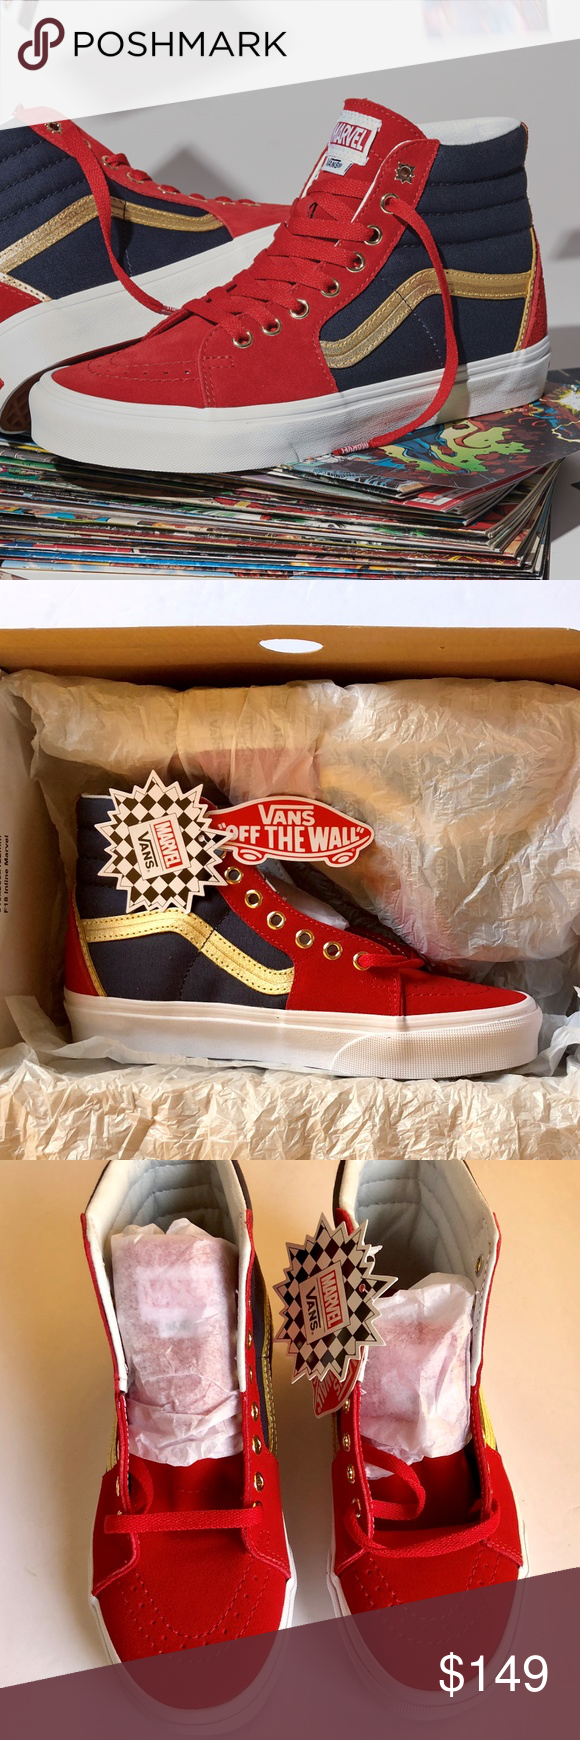 9dcc23e44f5d2b Vans Captain Marvel Limited Edition Sk8 Hi 100% AUTHENTIC - NEW - WITH BOX Men s  size 7.5 These are sold out everywhere! Converse Shoes Sneakers